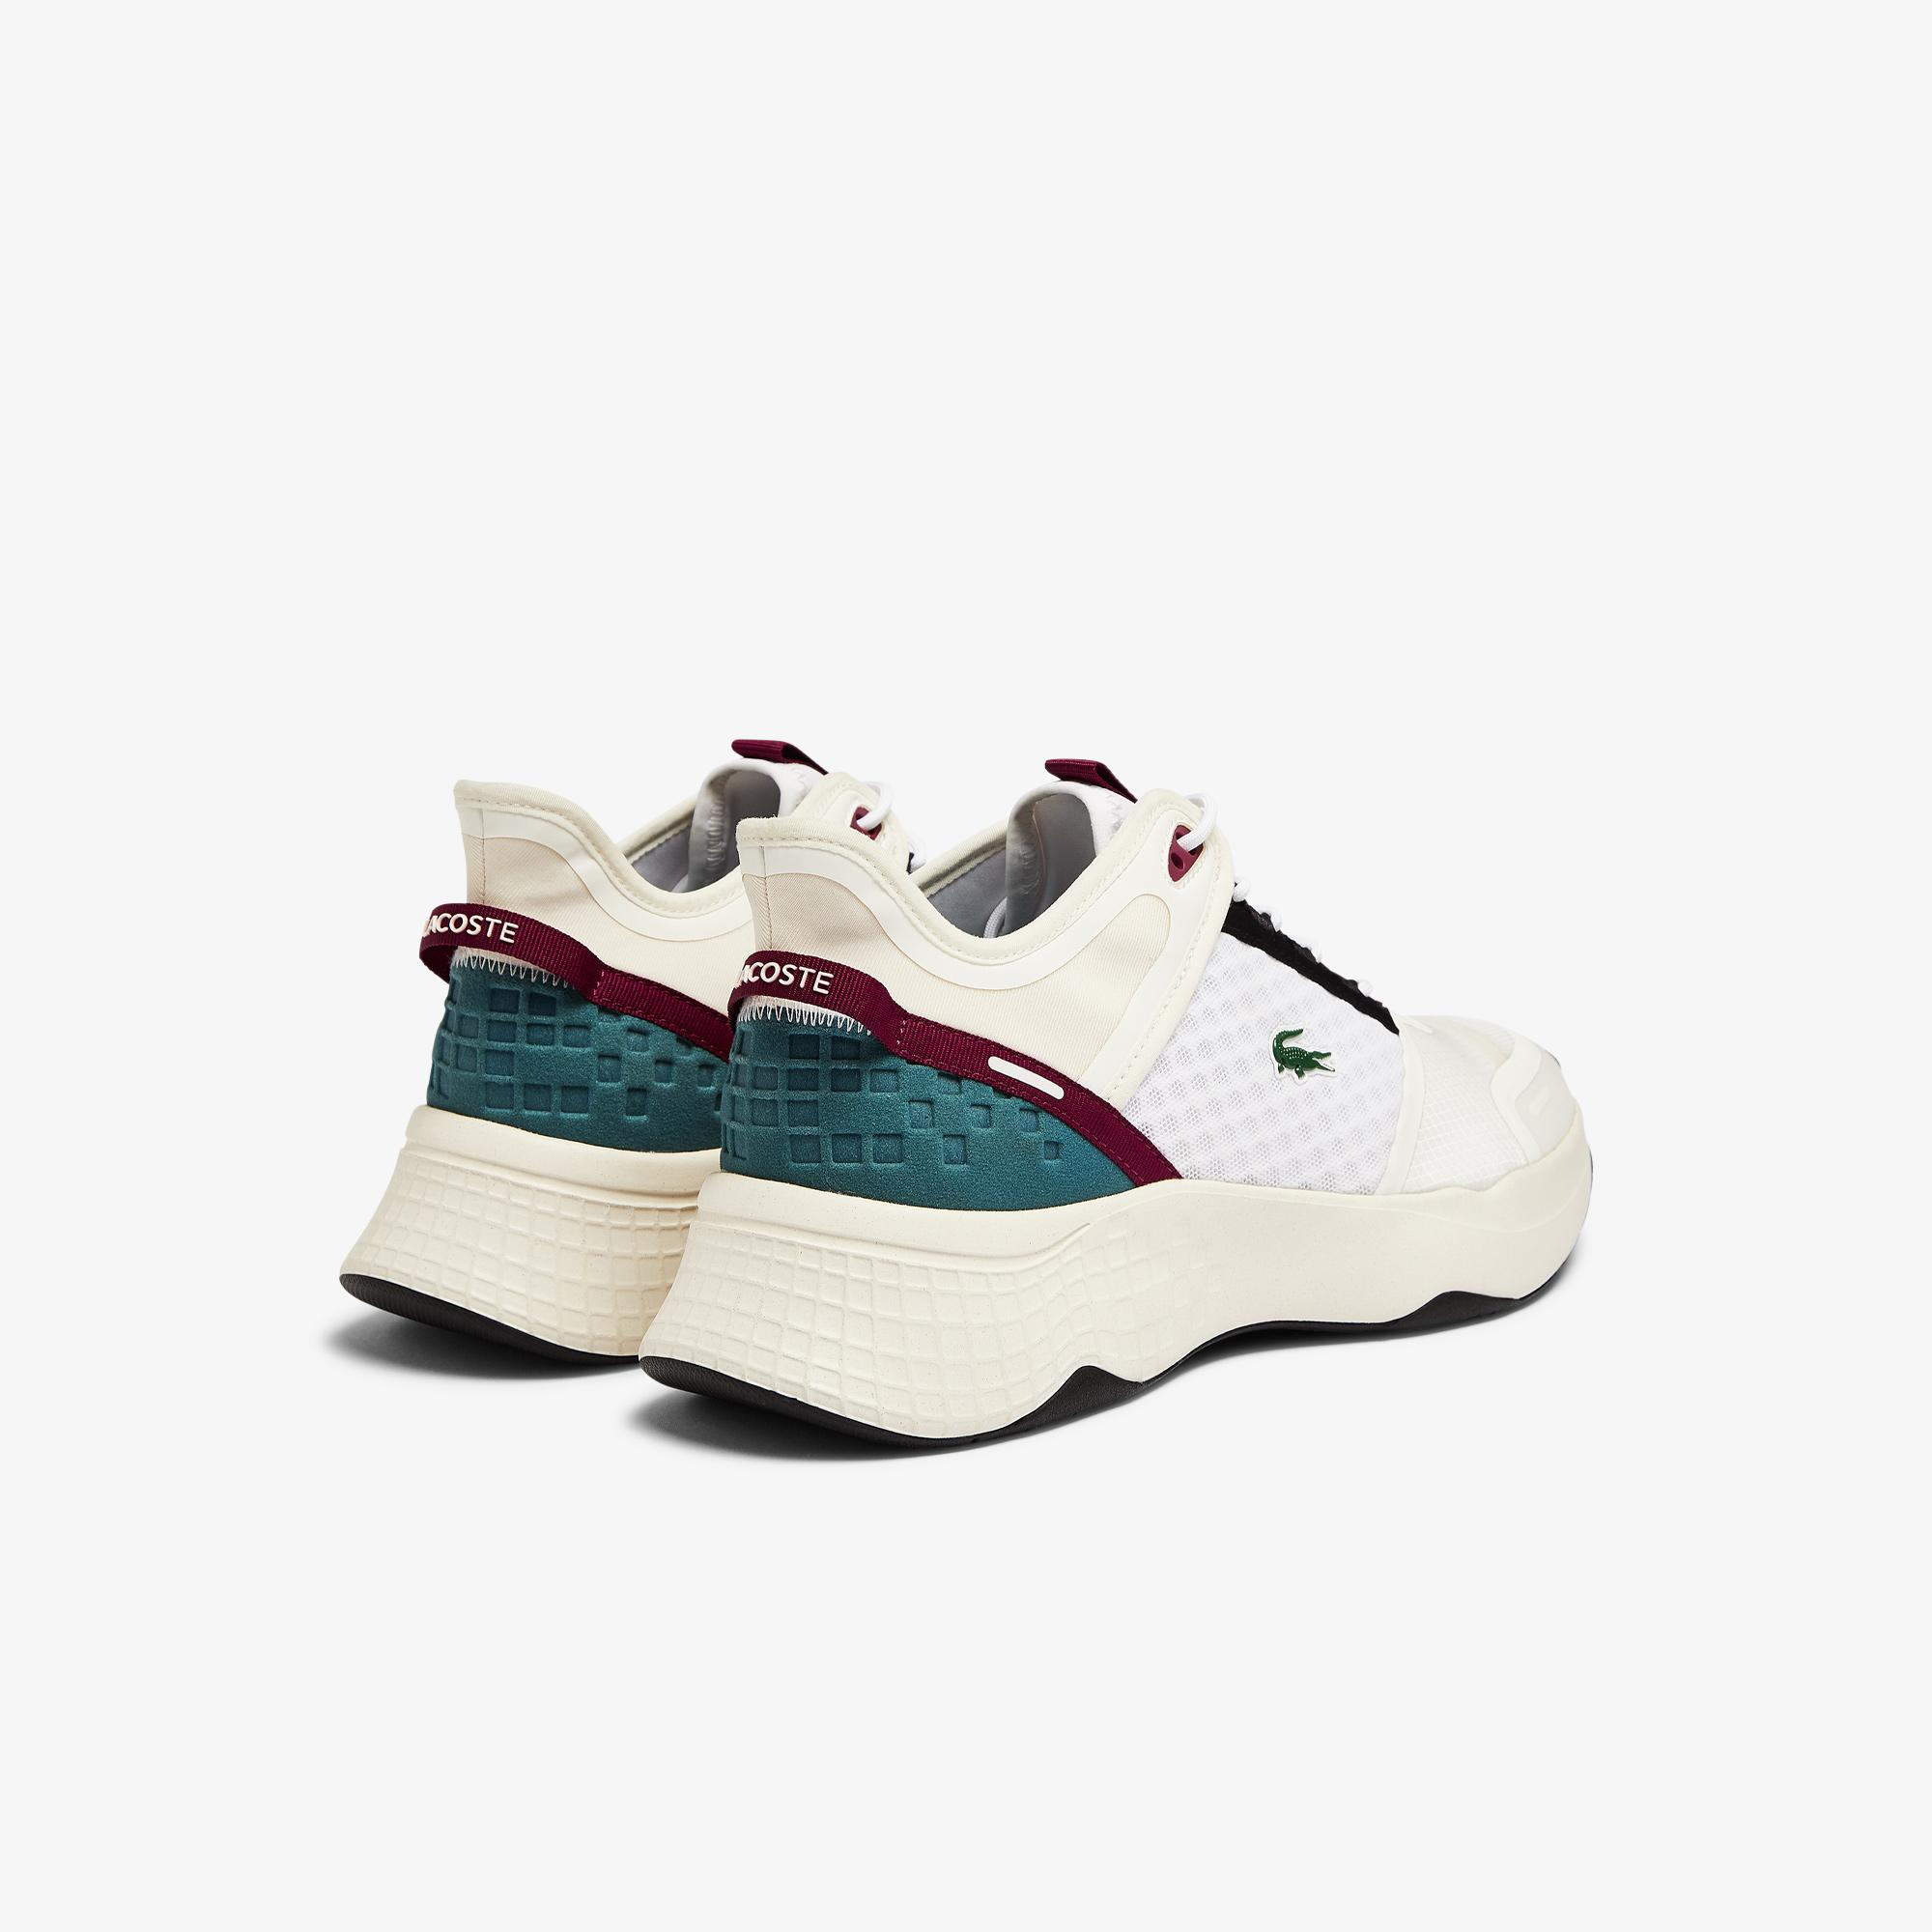 Lacoste Men's Court-Drıvevntge09211Sma Shoes